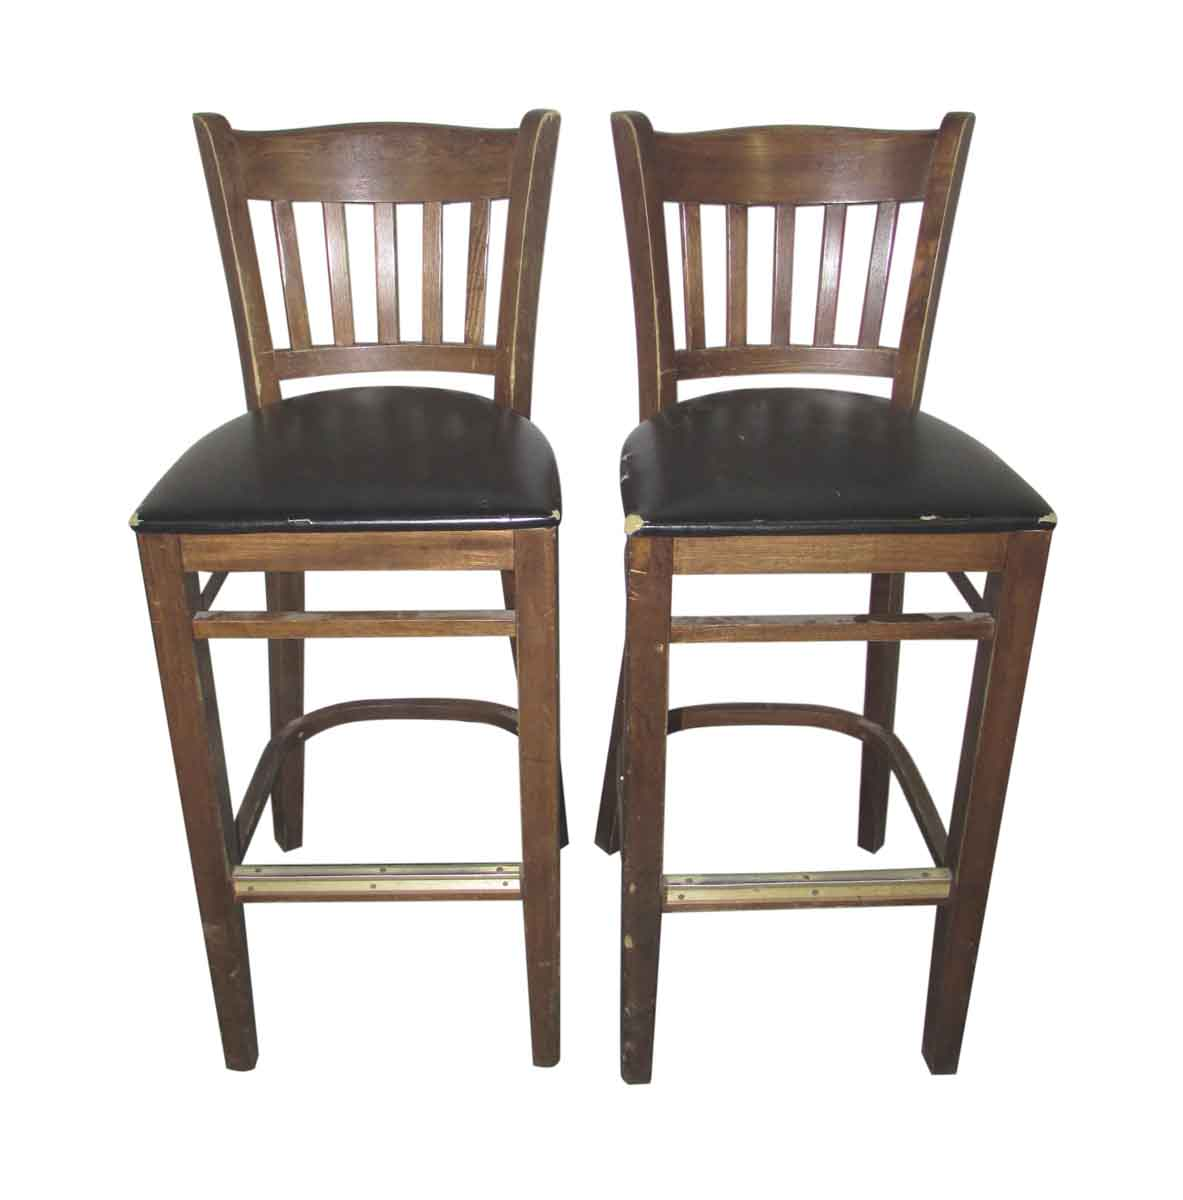 Very Impressive portraiture of  / Antique Furniture / Seating / Wooden Bar Stools with Slatted Backs with #7E6148 color and 1183x1200 pixels